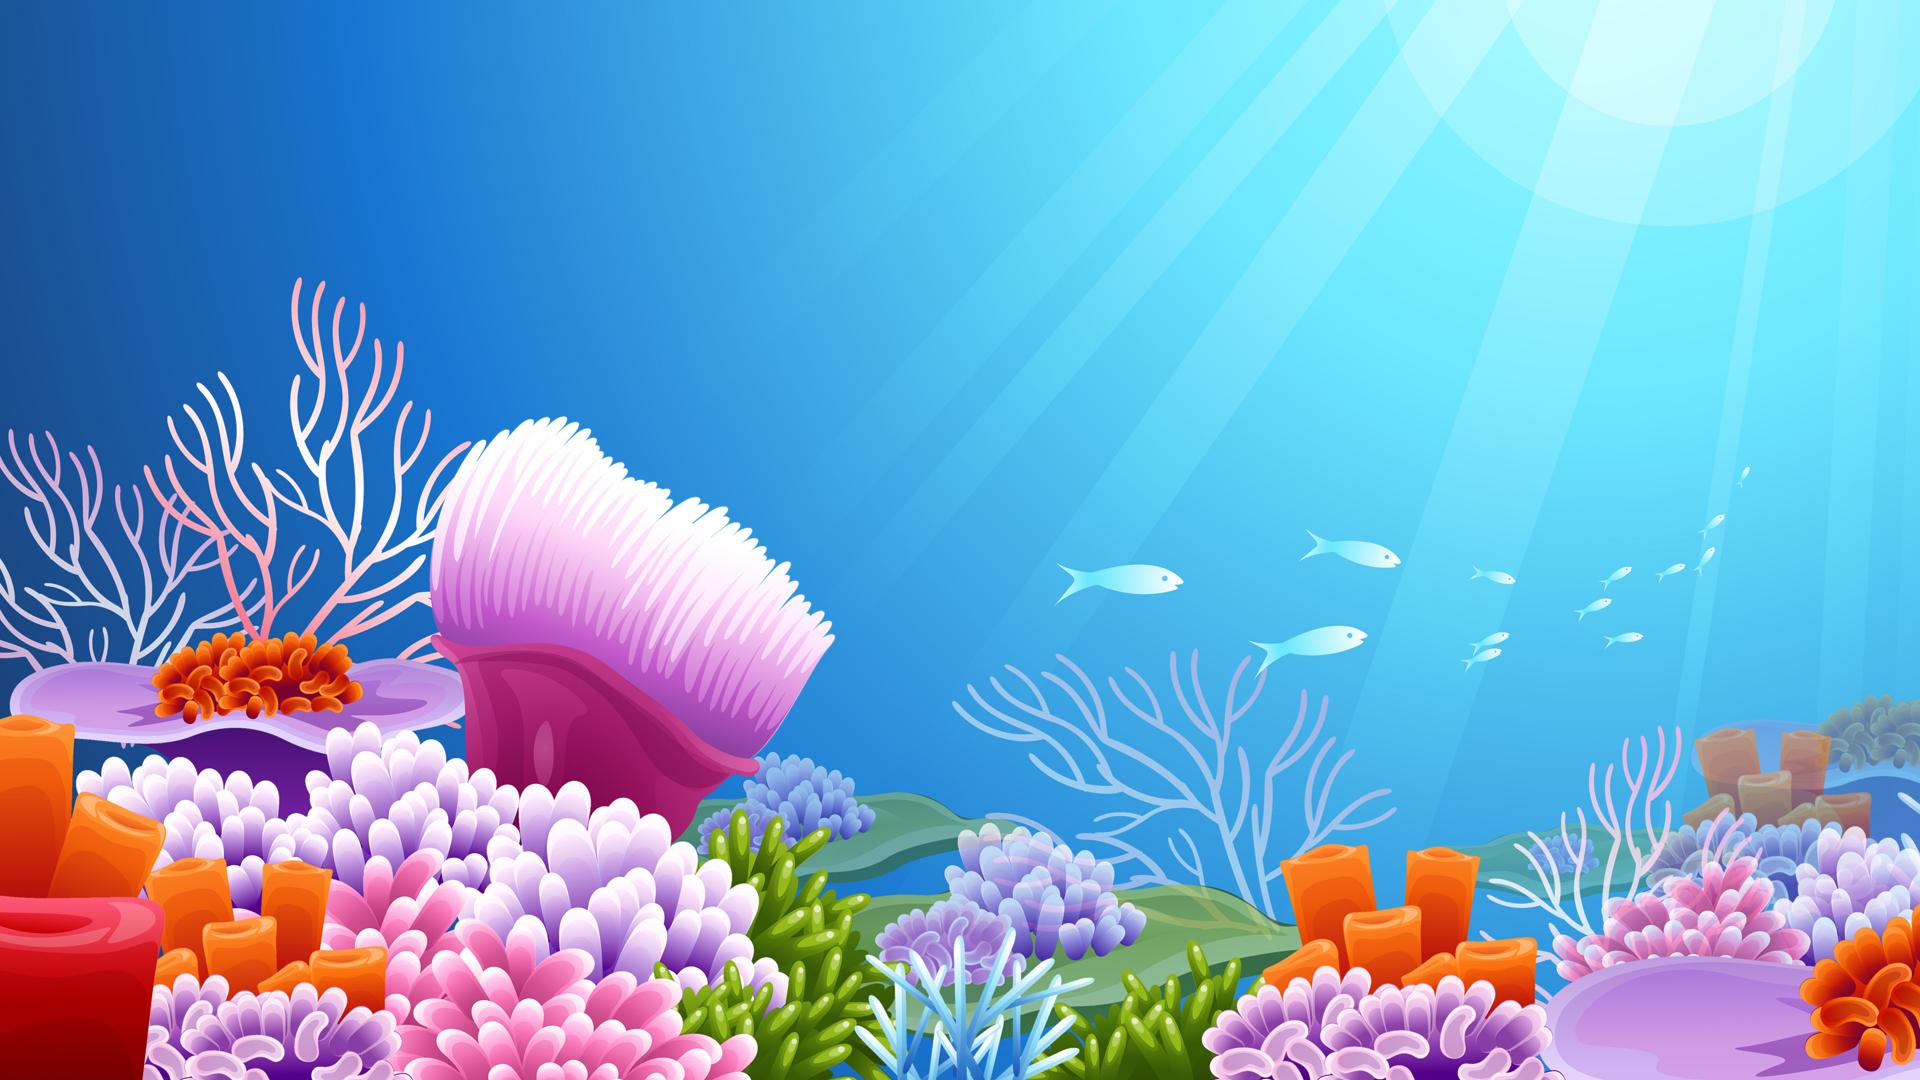 Free Under The Ocean Wallpaper - WallpaperSafari